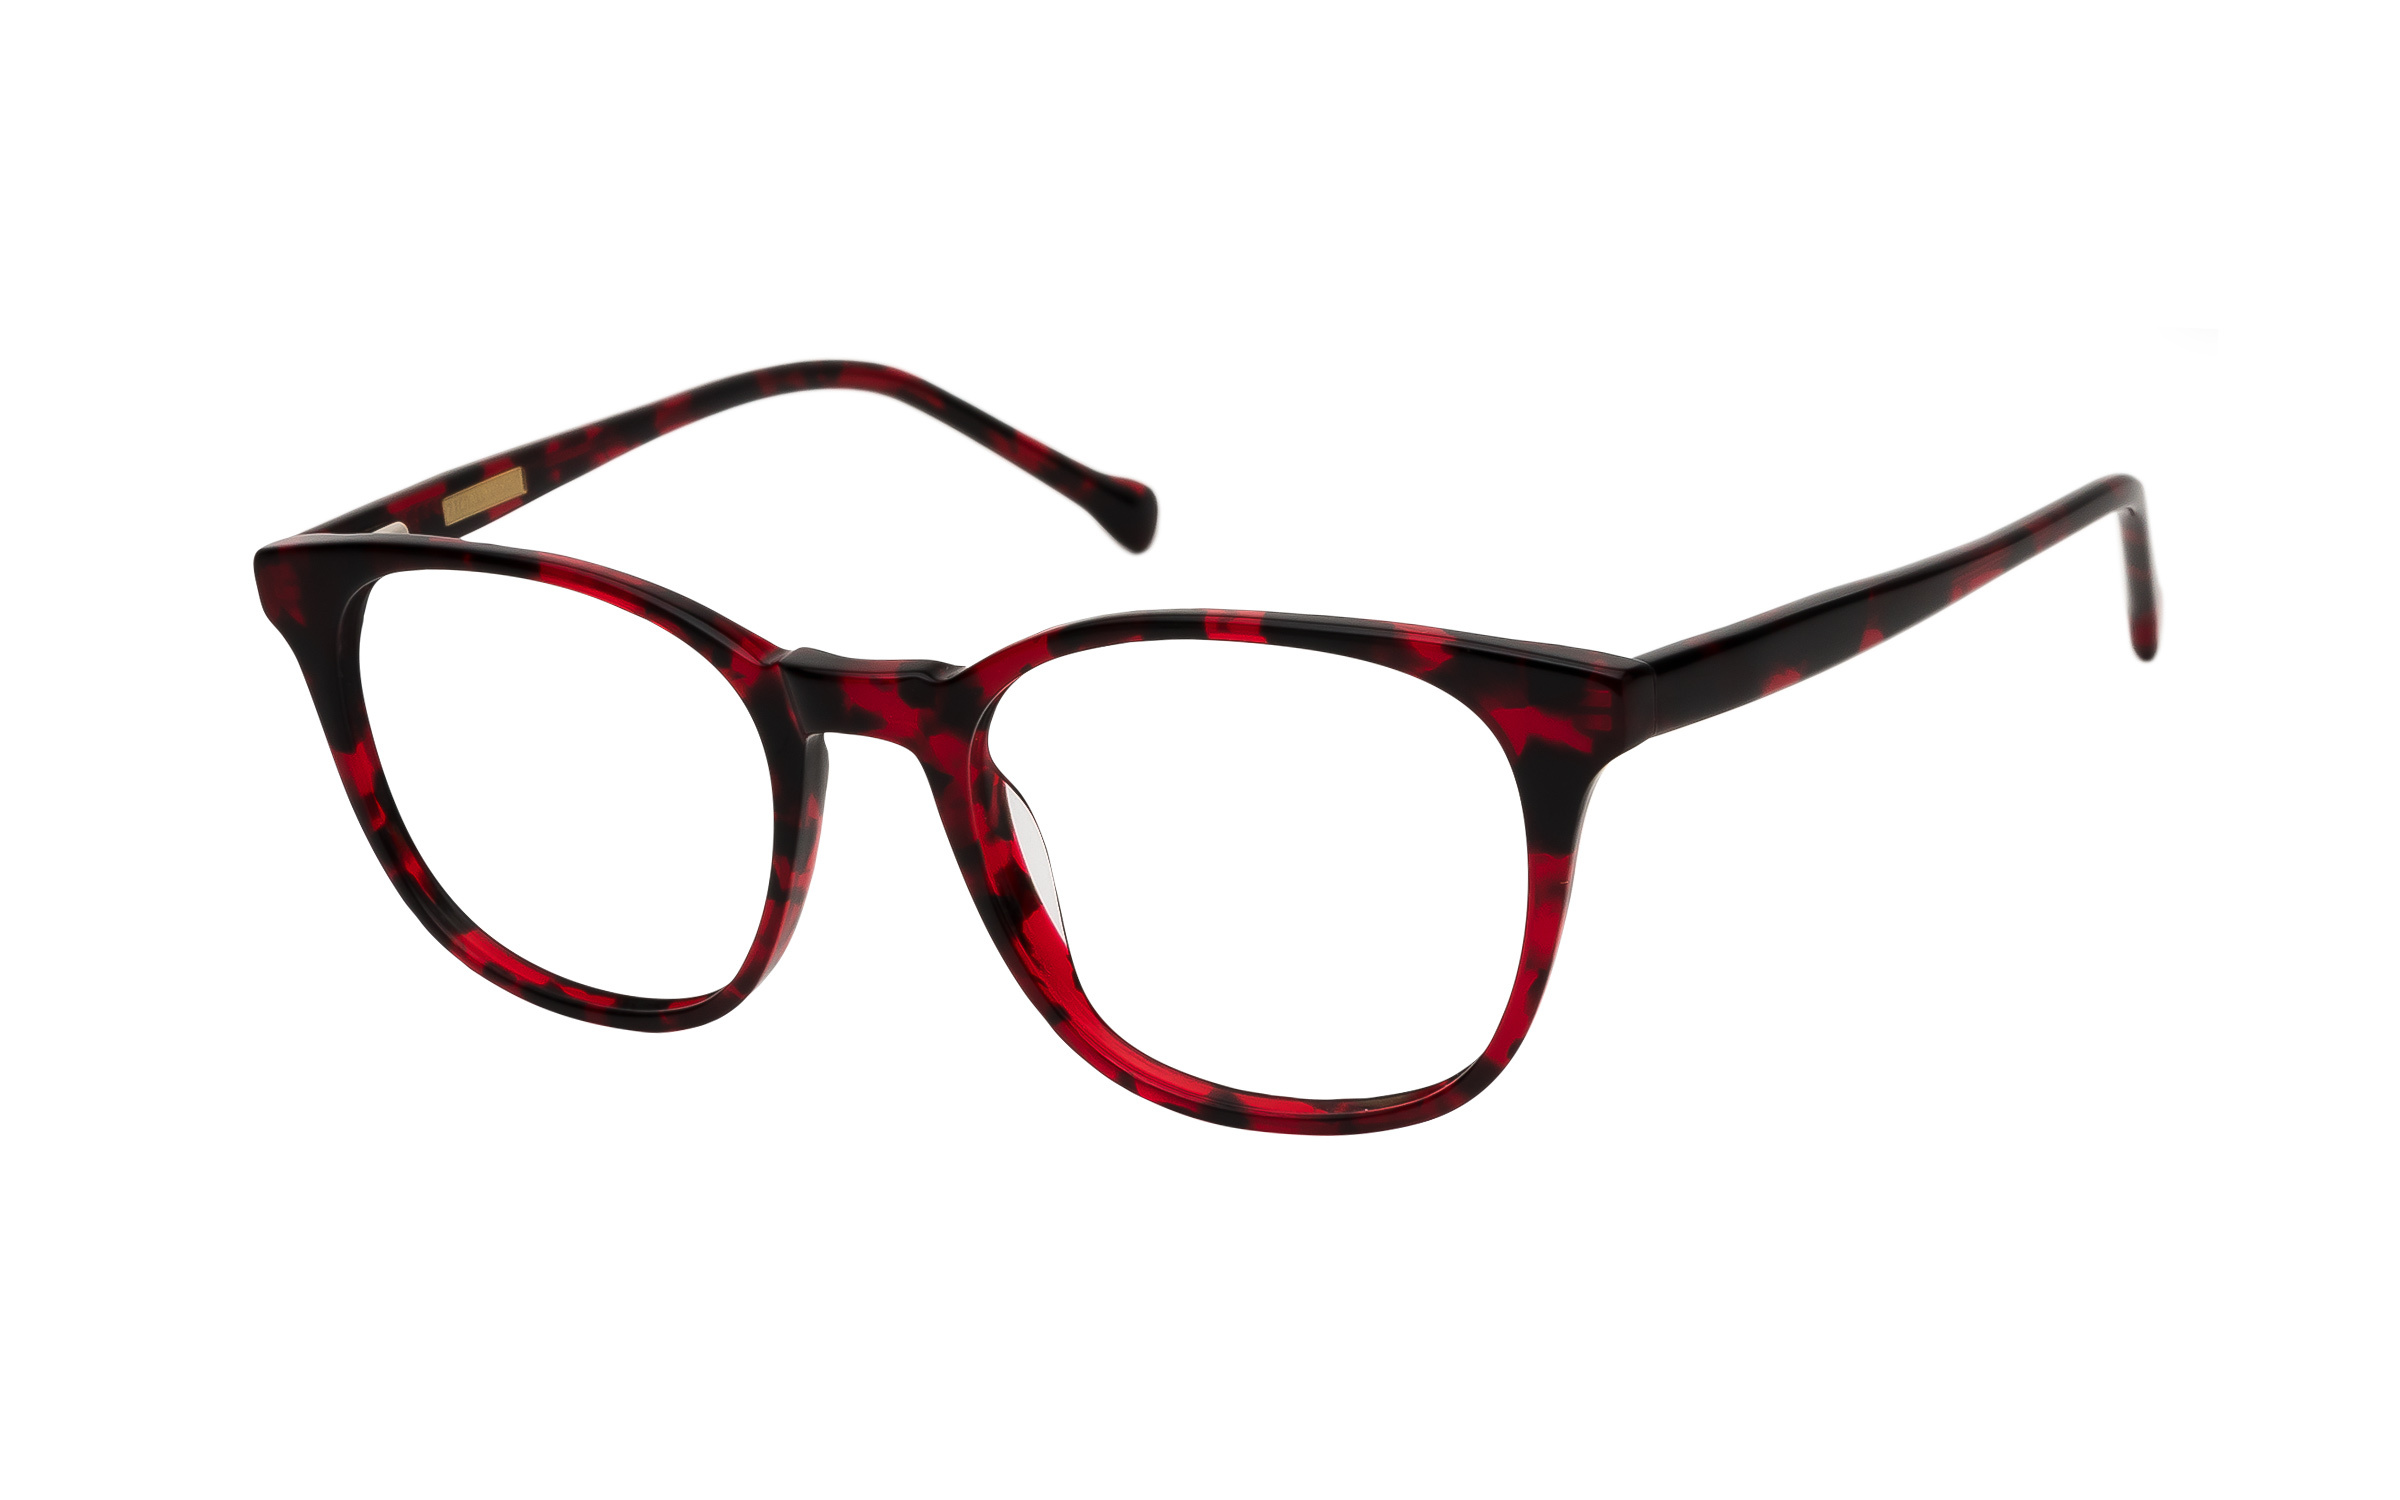 7 for All Mankind Glasses D-Frame Red/Tortoise Acetate Online Clearly